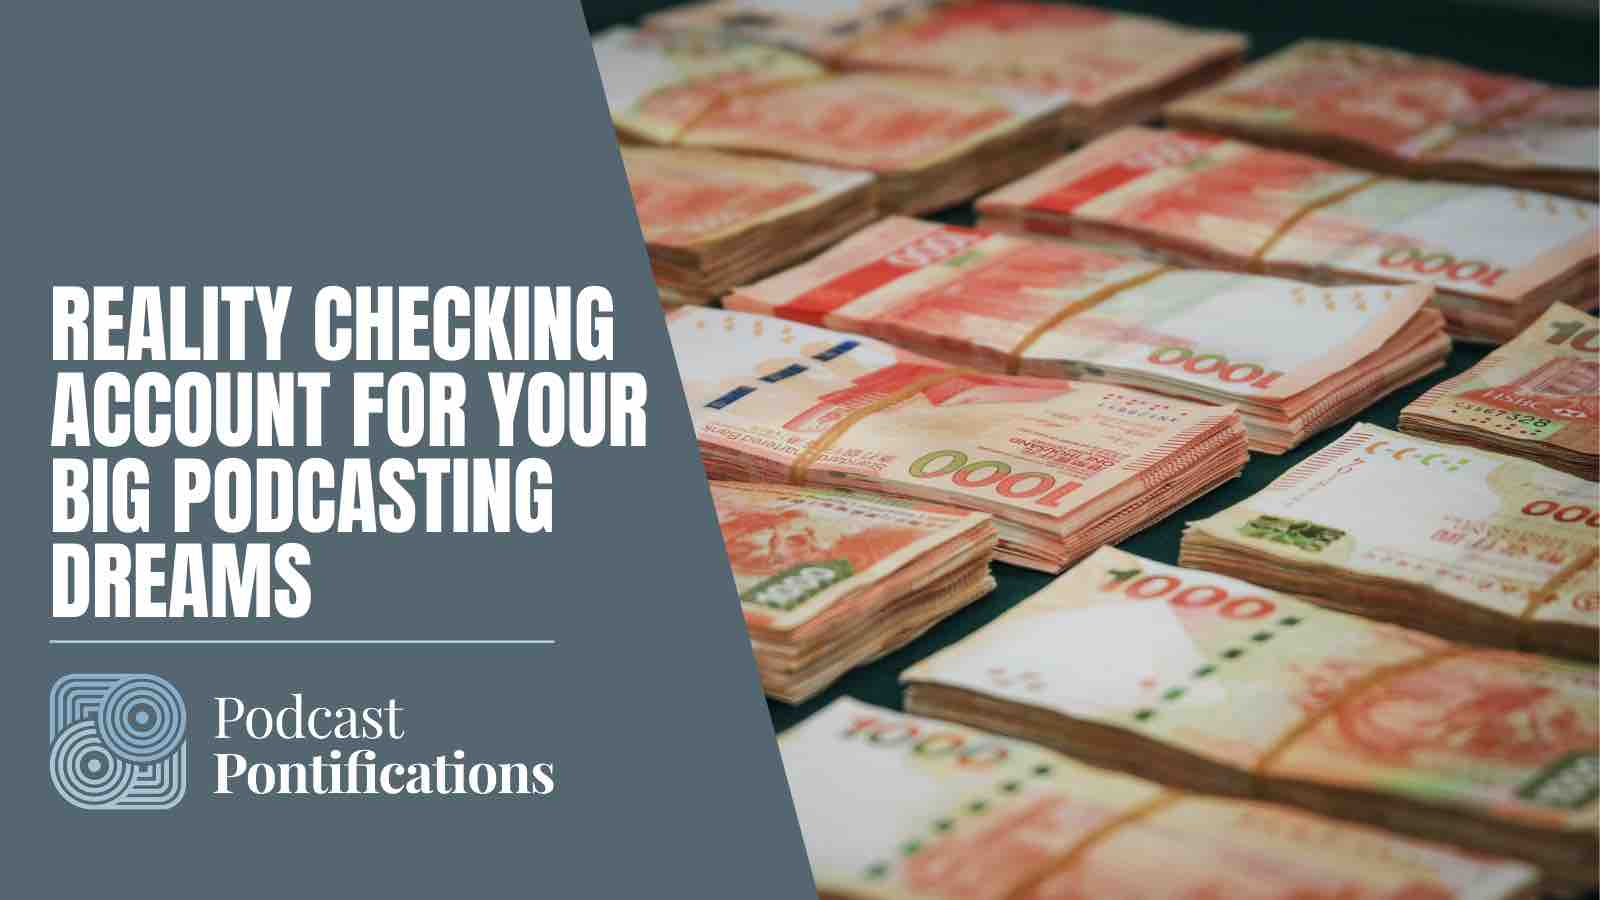 Reality Checking Account For Your Big Podcasting Dreams